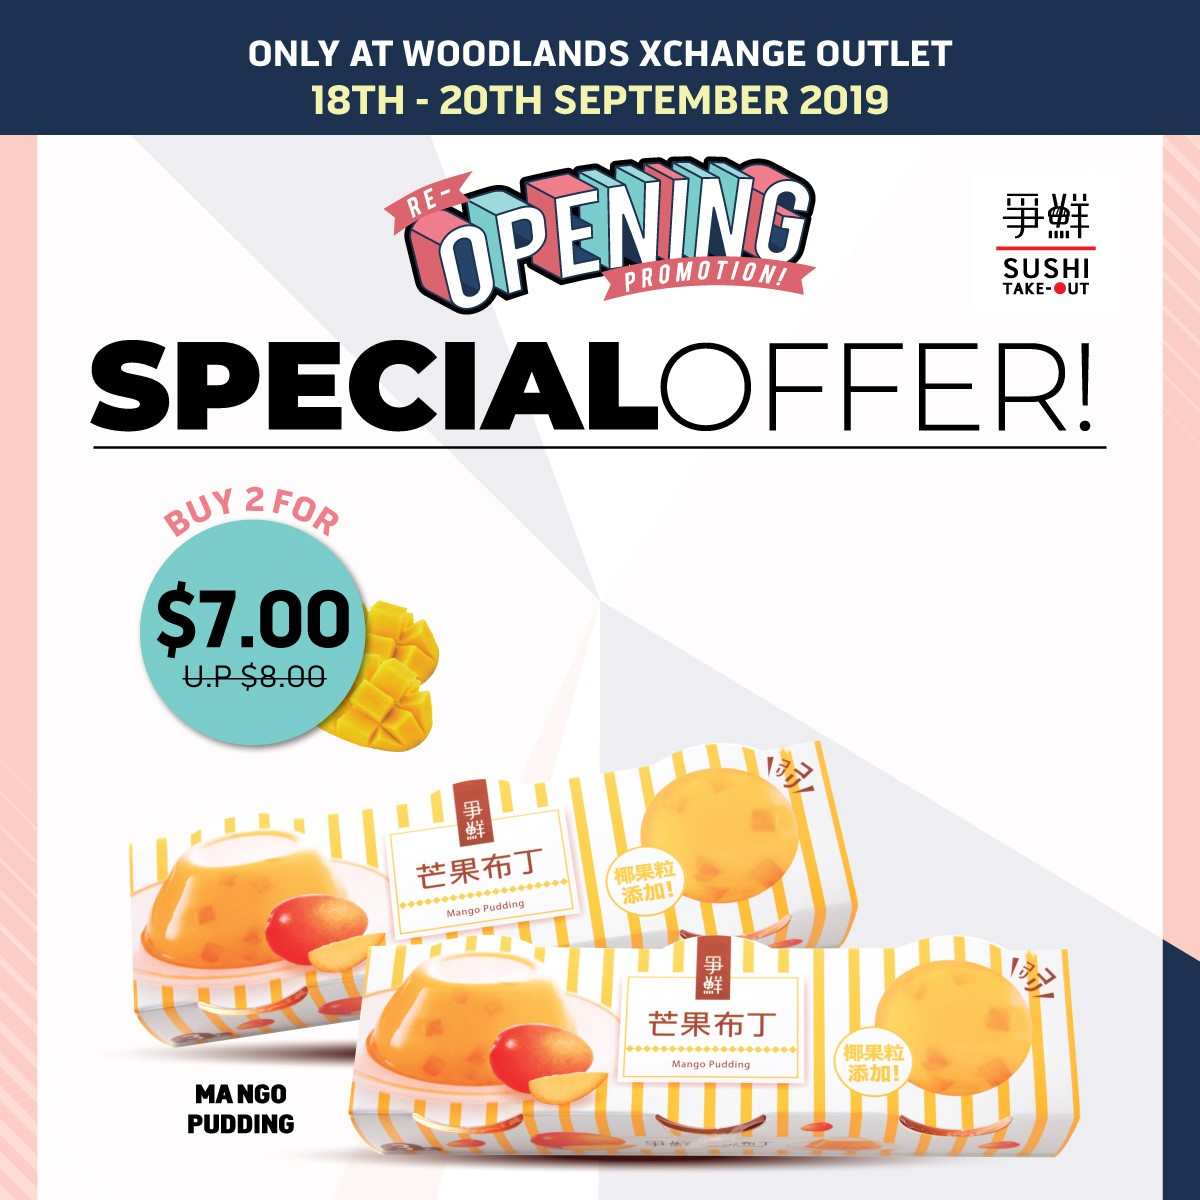 Sushi Express Singapore Purchase Any 2 Bentos & Get 3rd One FREE Promotion 18-20 Sep 2019 | Why Not Deals 2 & Promotions